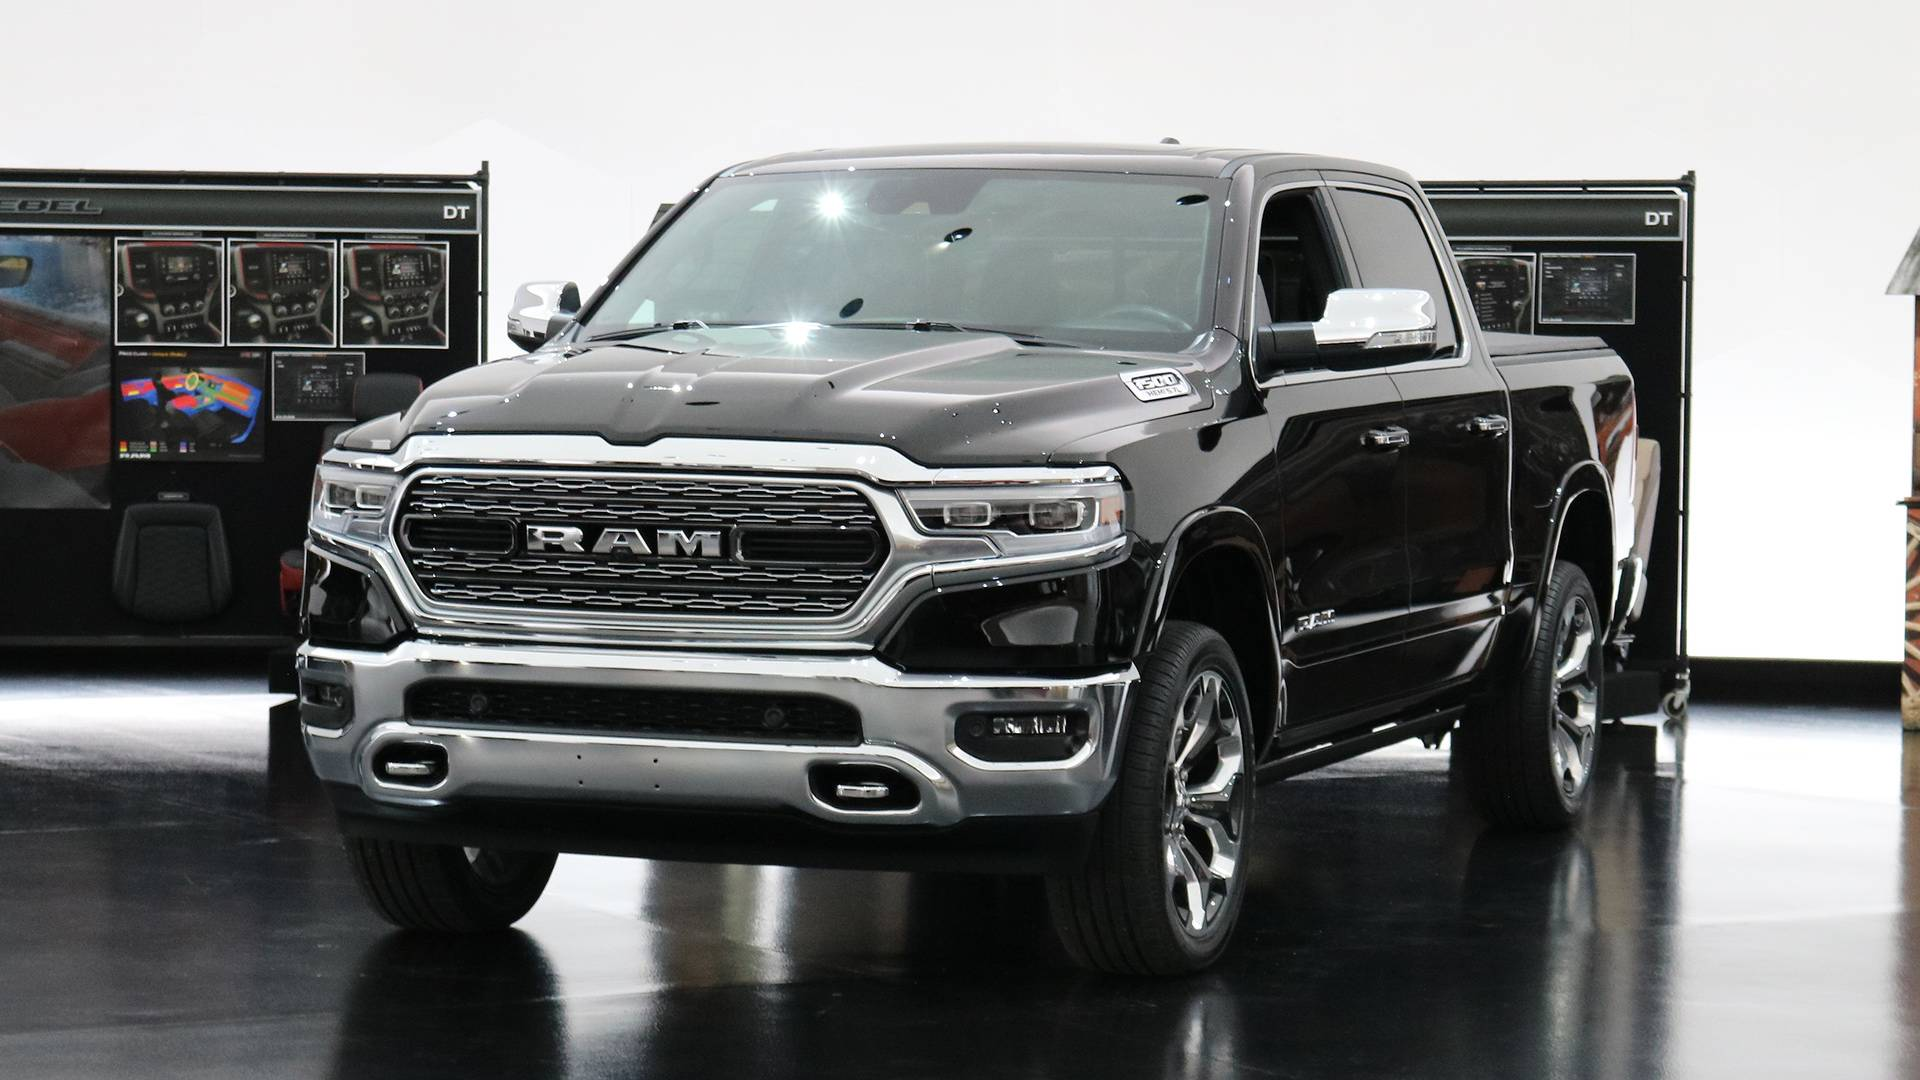 2019 Ram - 12-inch touchscreen vs. the competition - Page 2